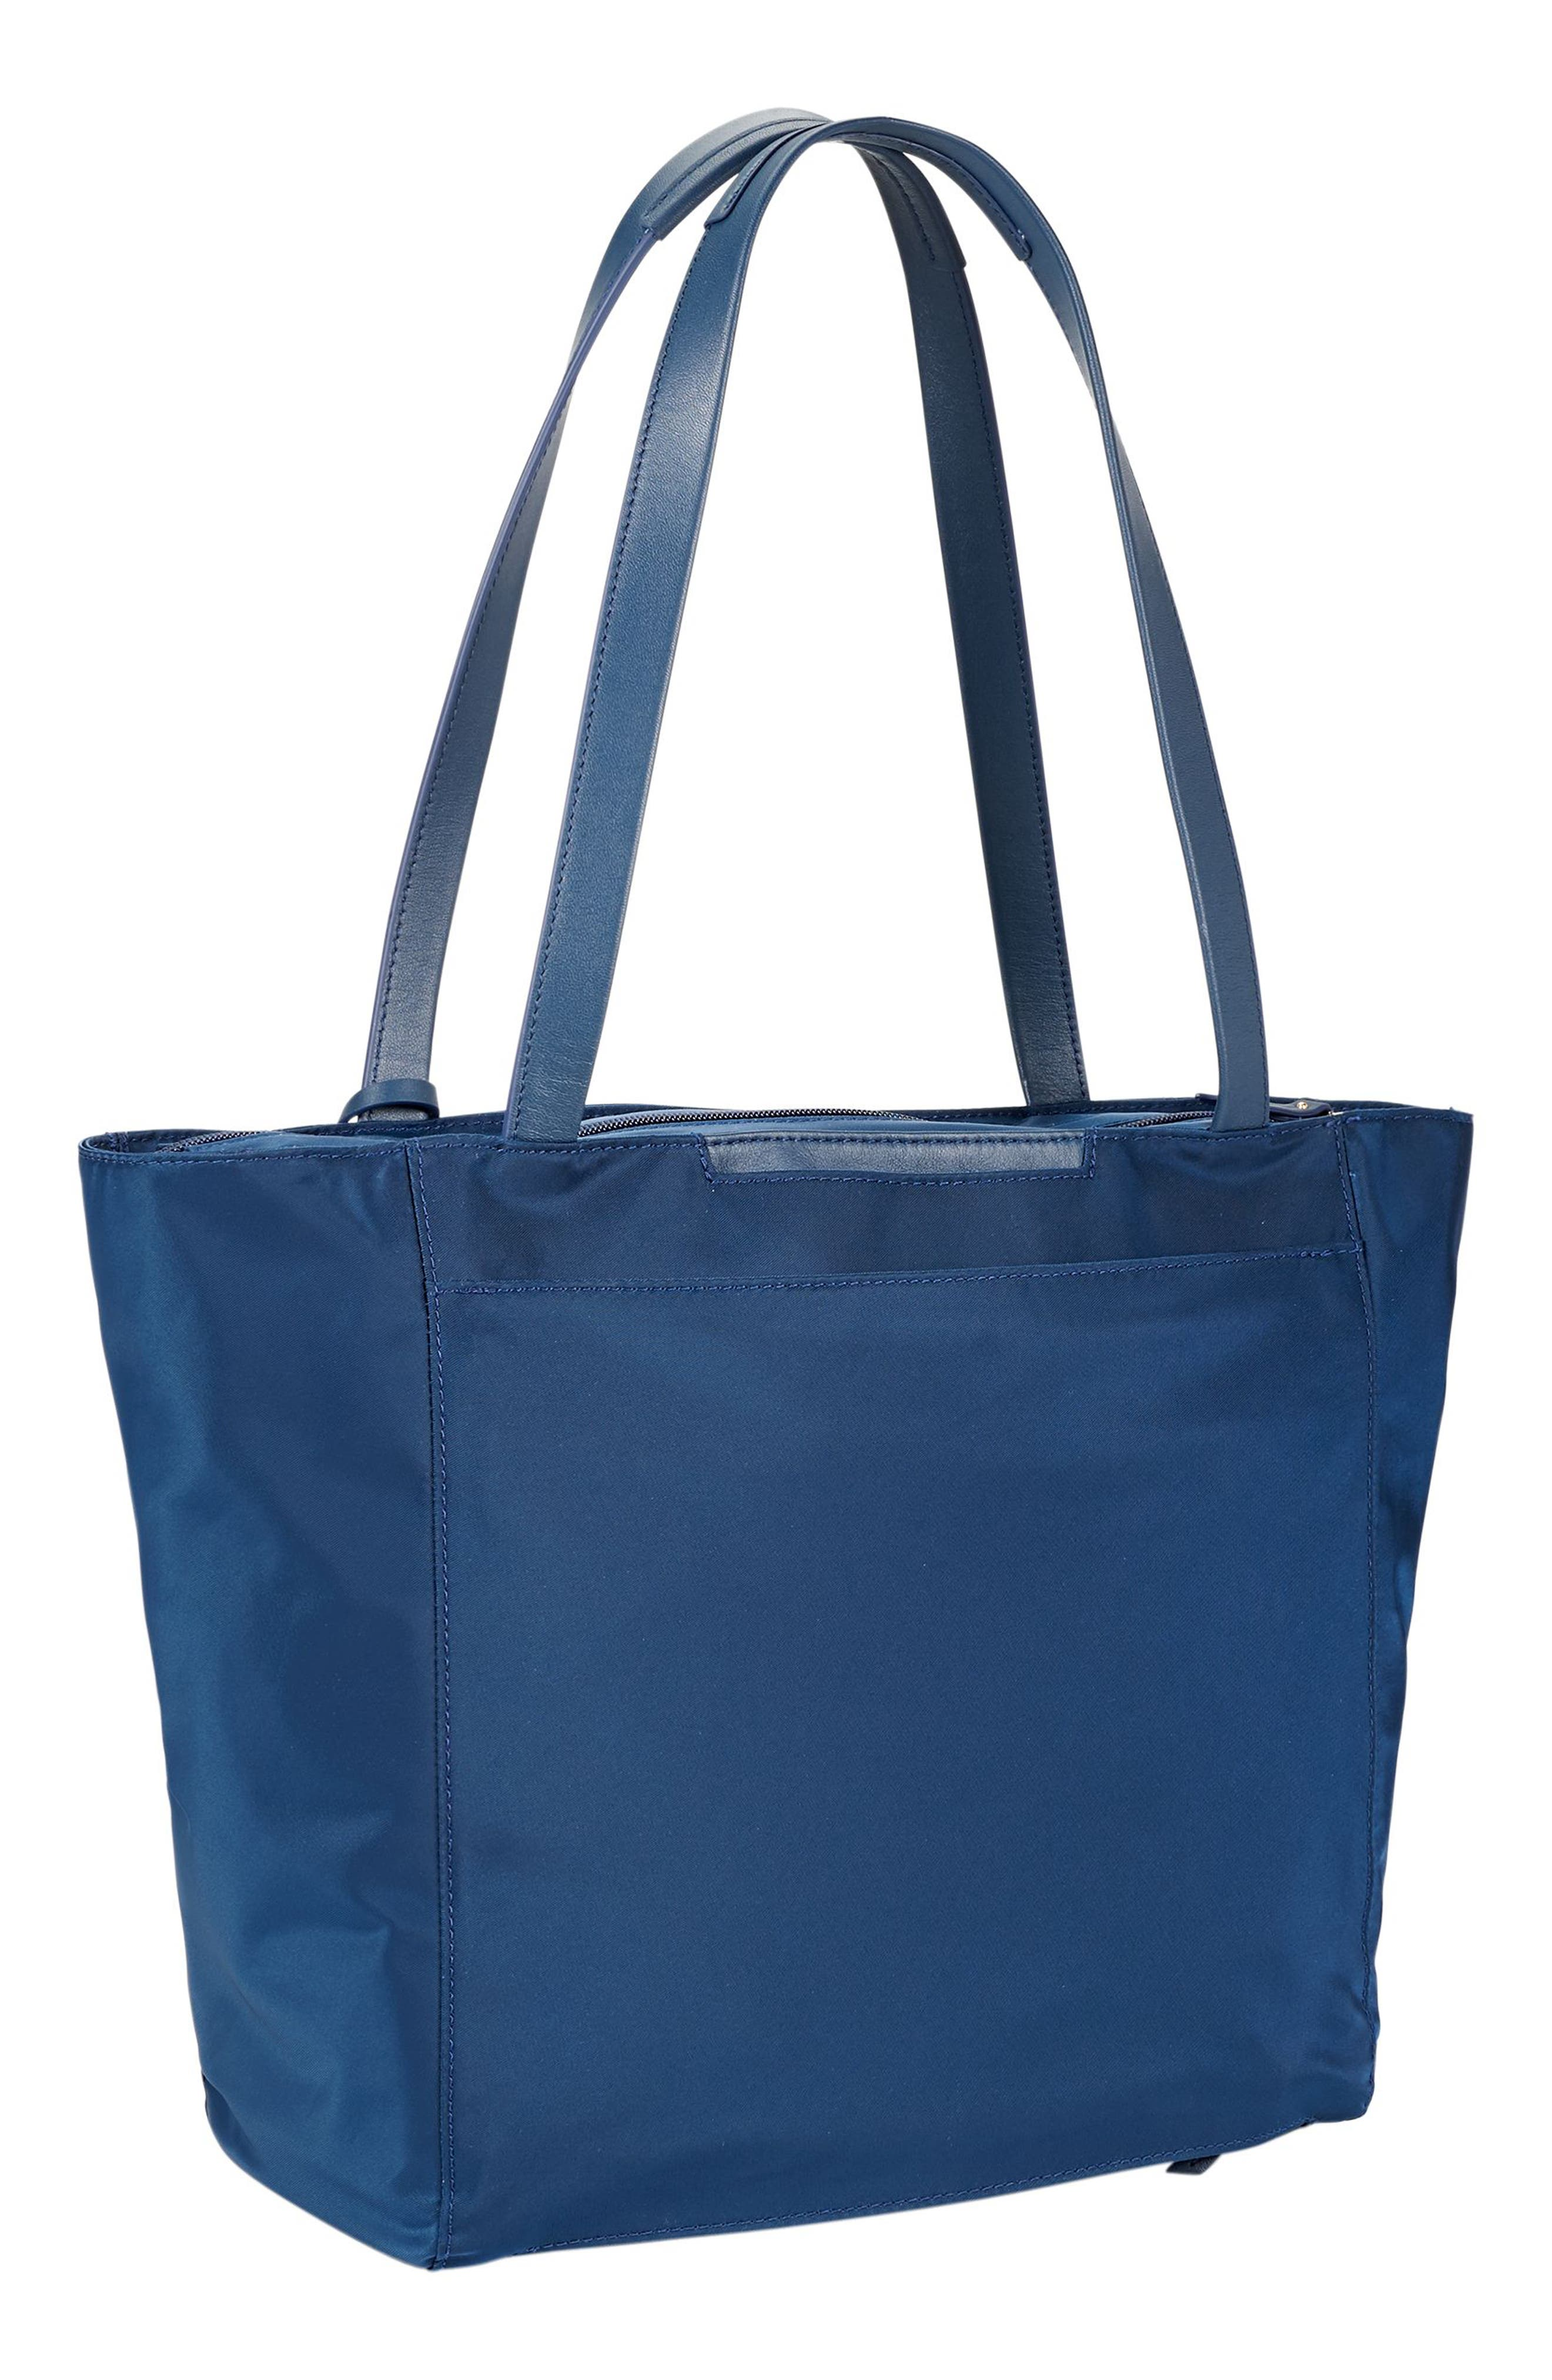 Small M-Tote Nylon Tote,                             Alternate thumbnail 3, color,                             Ocean Blue